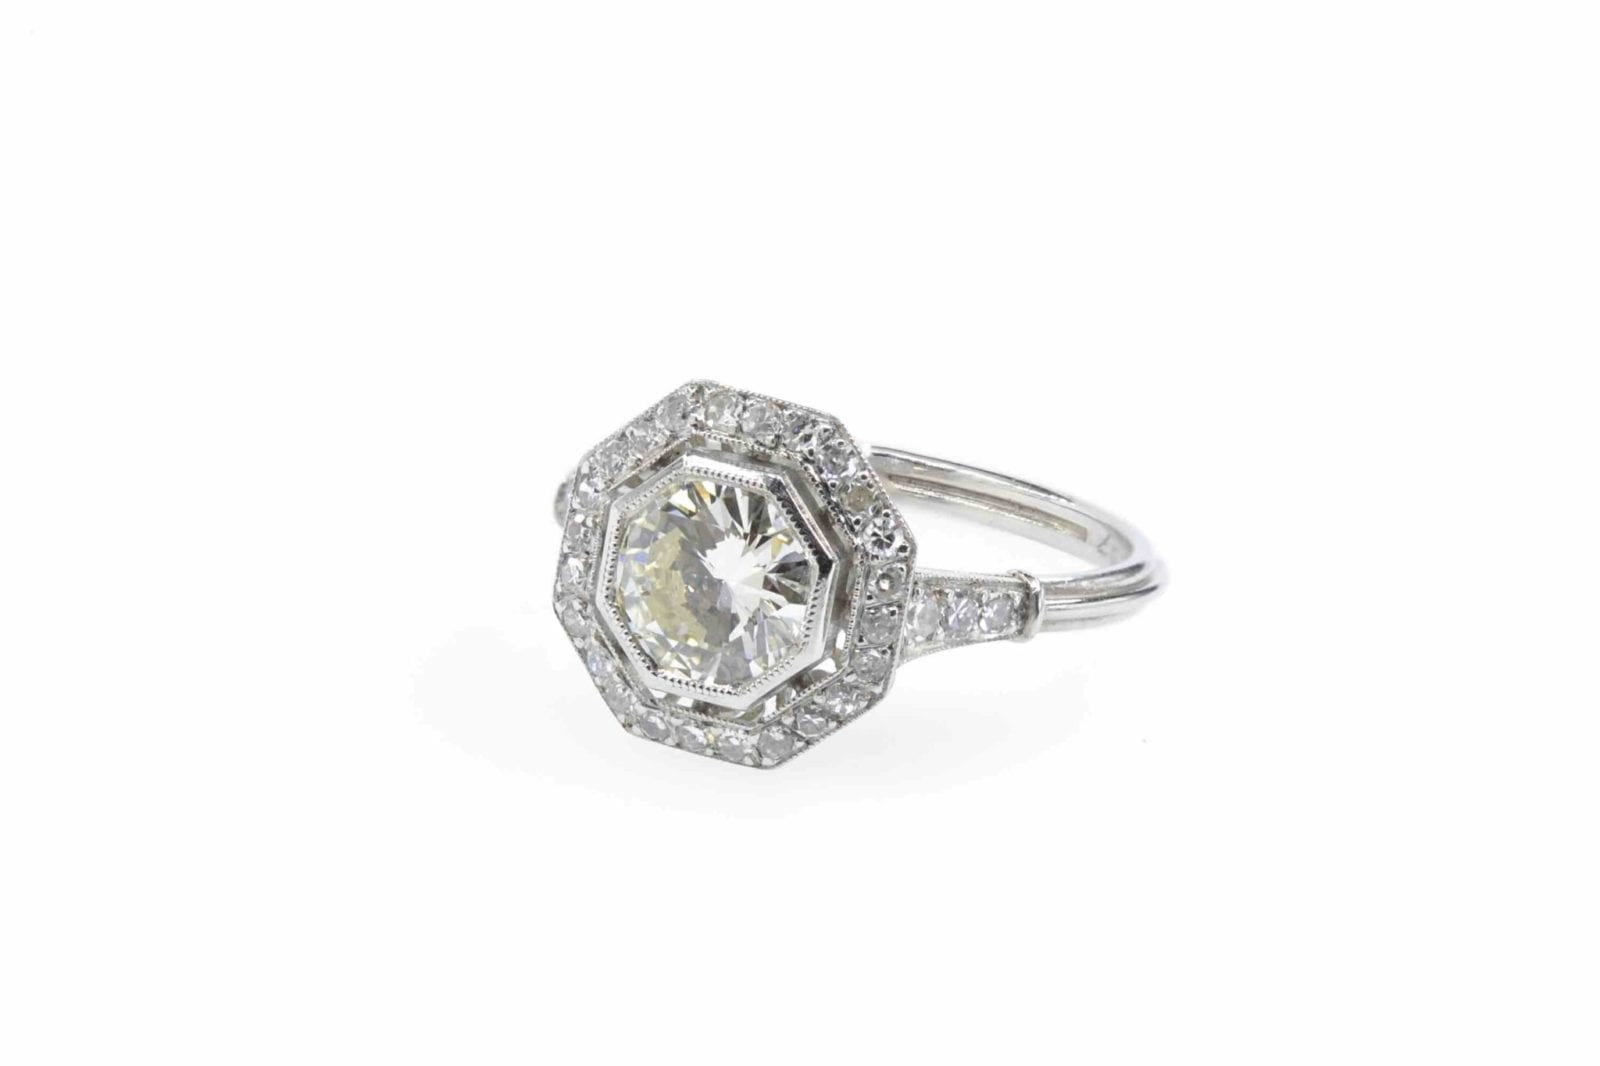 Bague octogonale diamants en platine